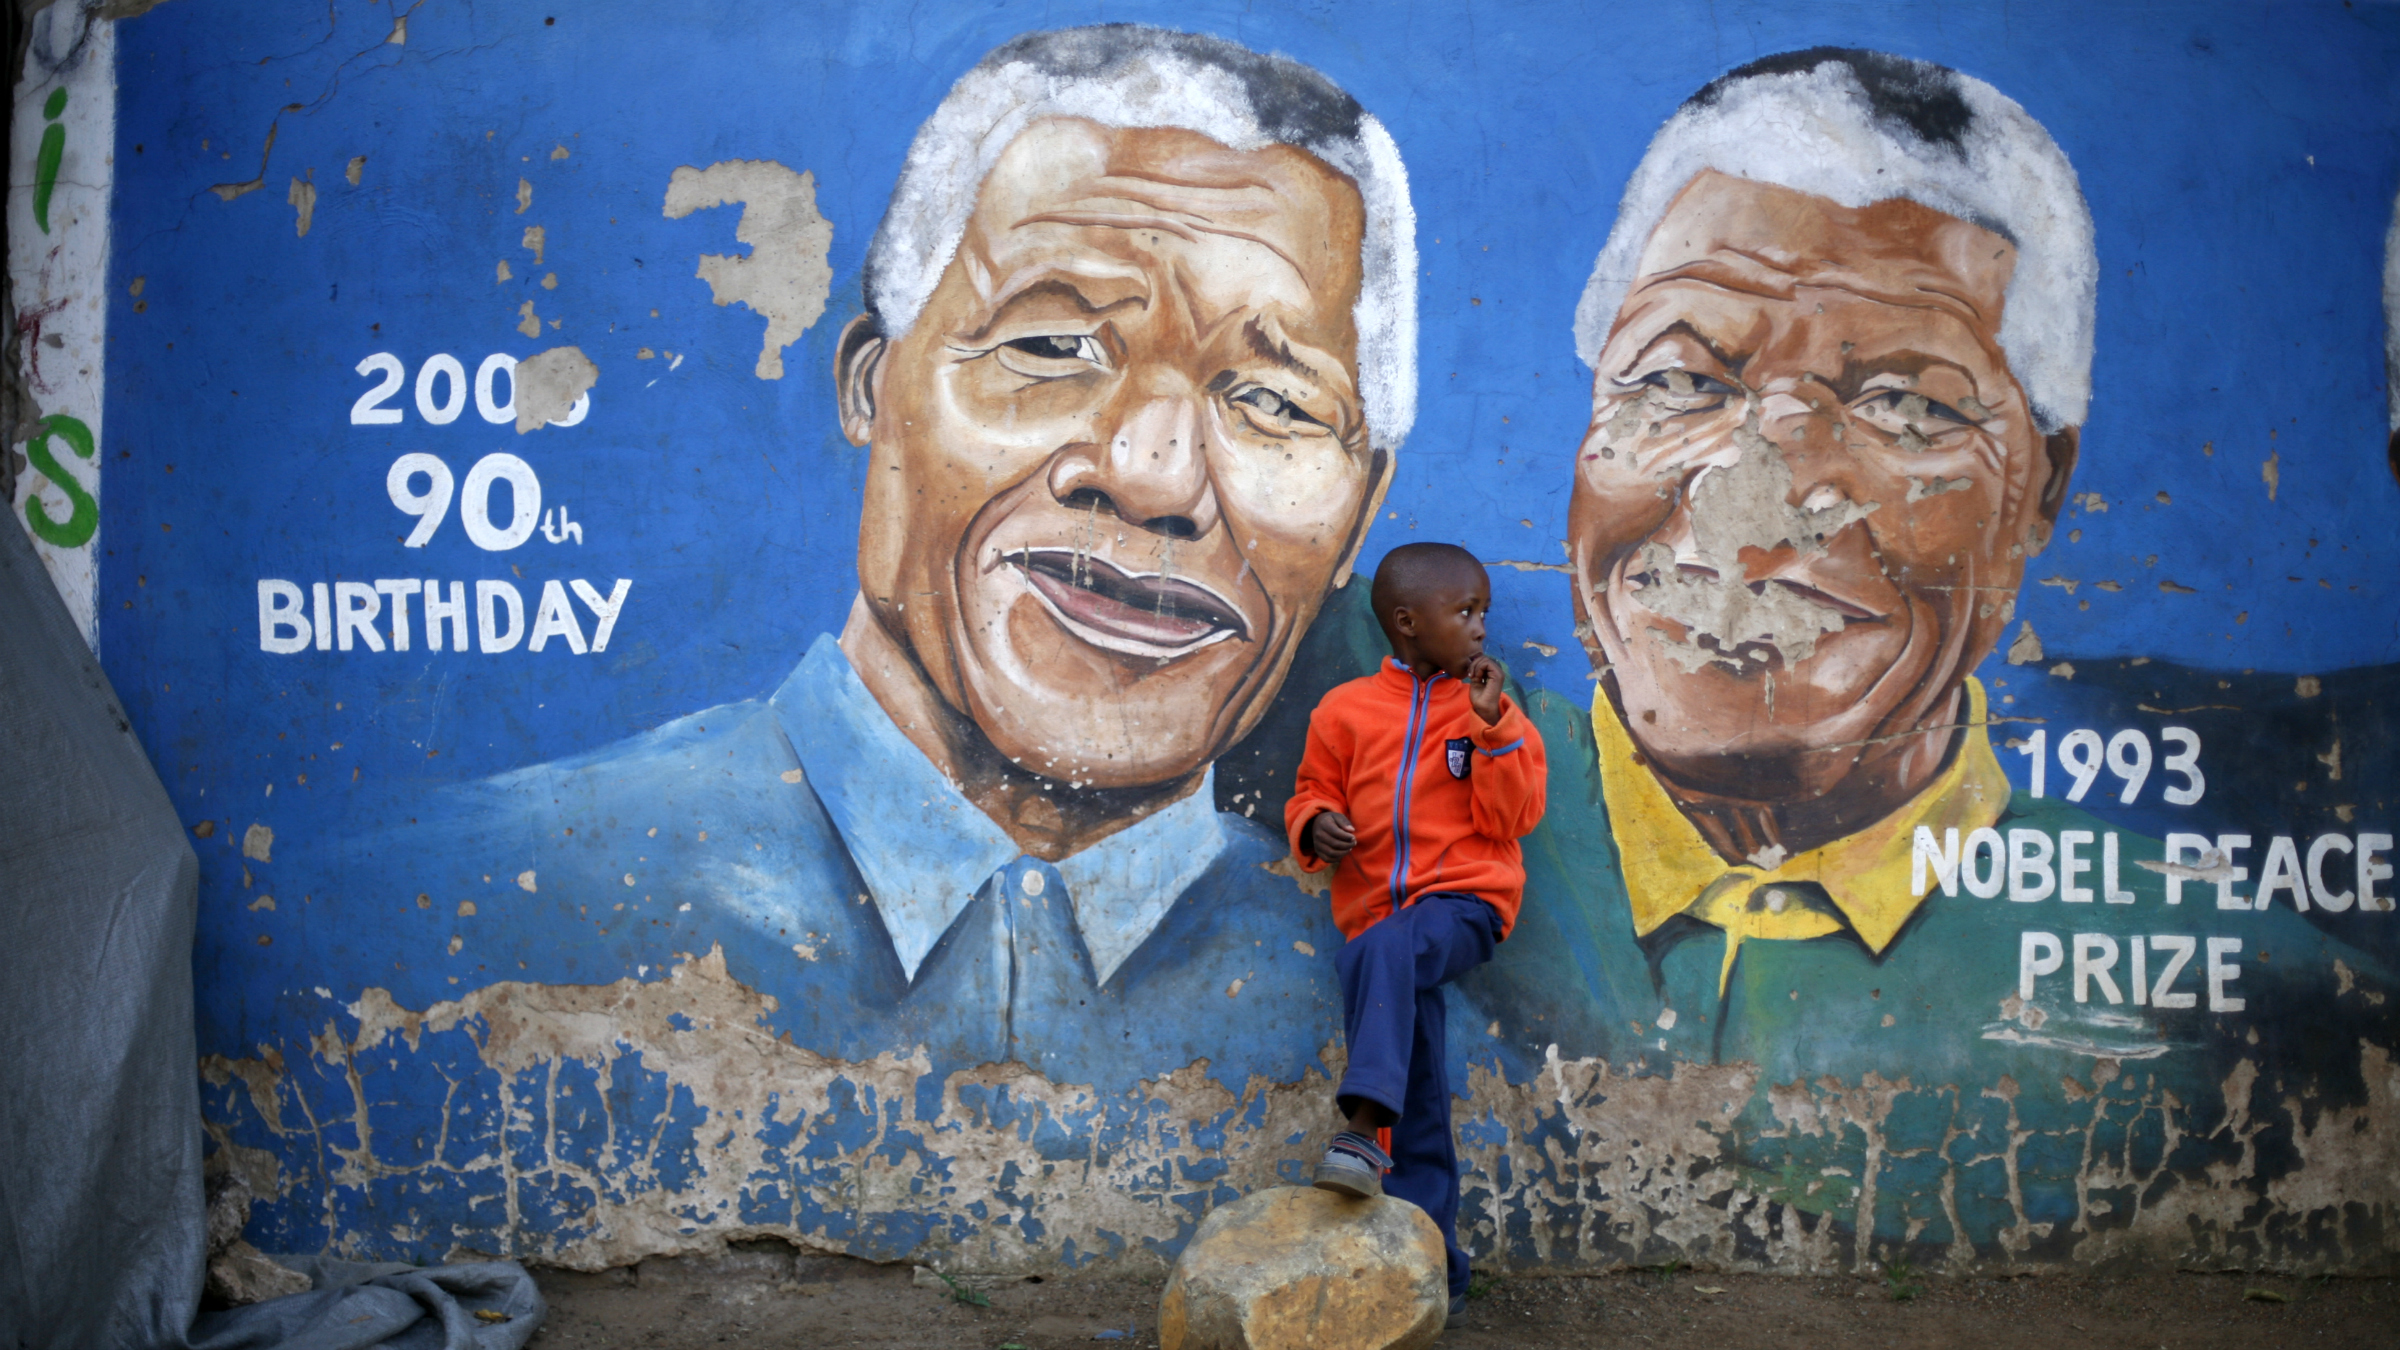 A young boy stands by a mural of Nelson Mandela in the Soweto township in Johannesburg, South Africa.